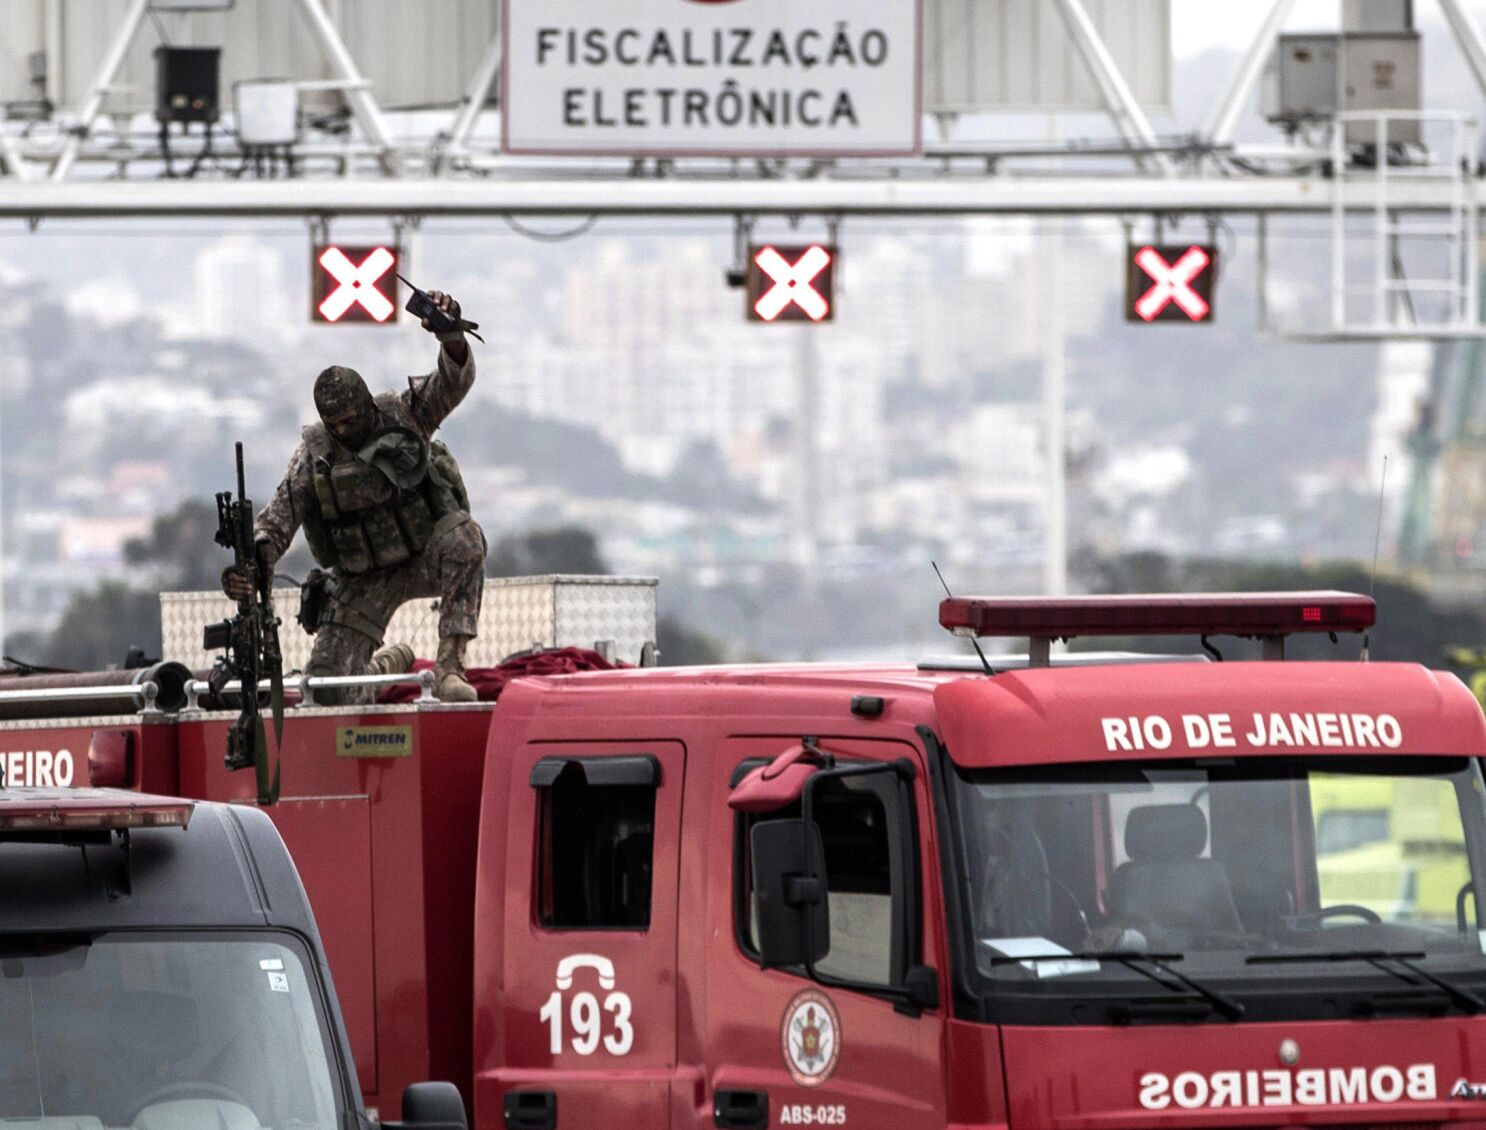 Police kill armed man who hijacked a bus in Rio de Janeiro and took passengers hostage